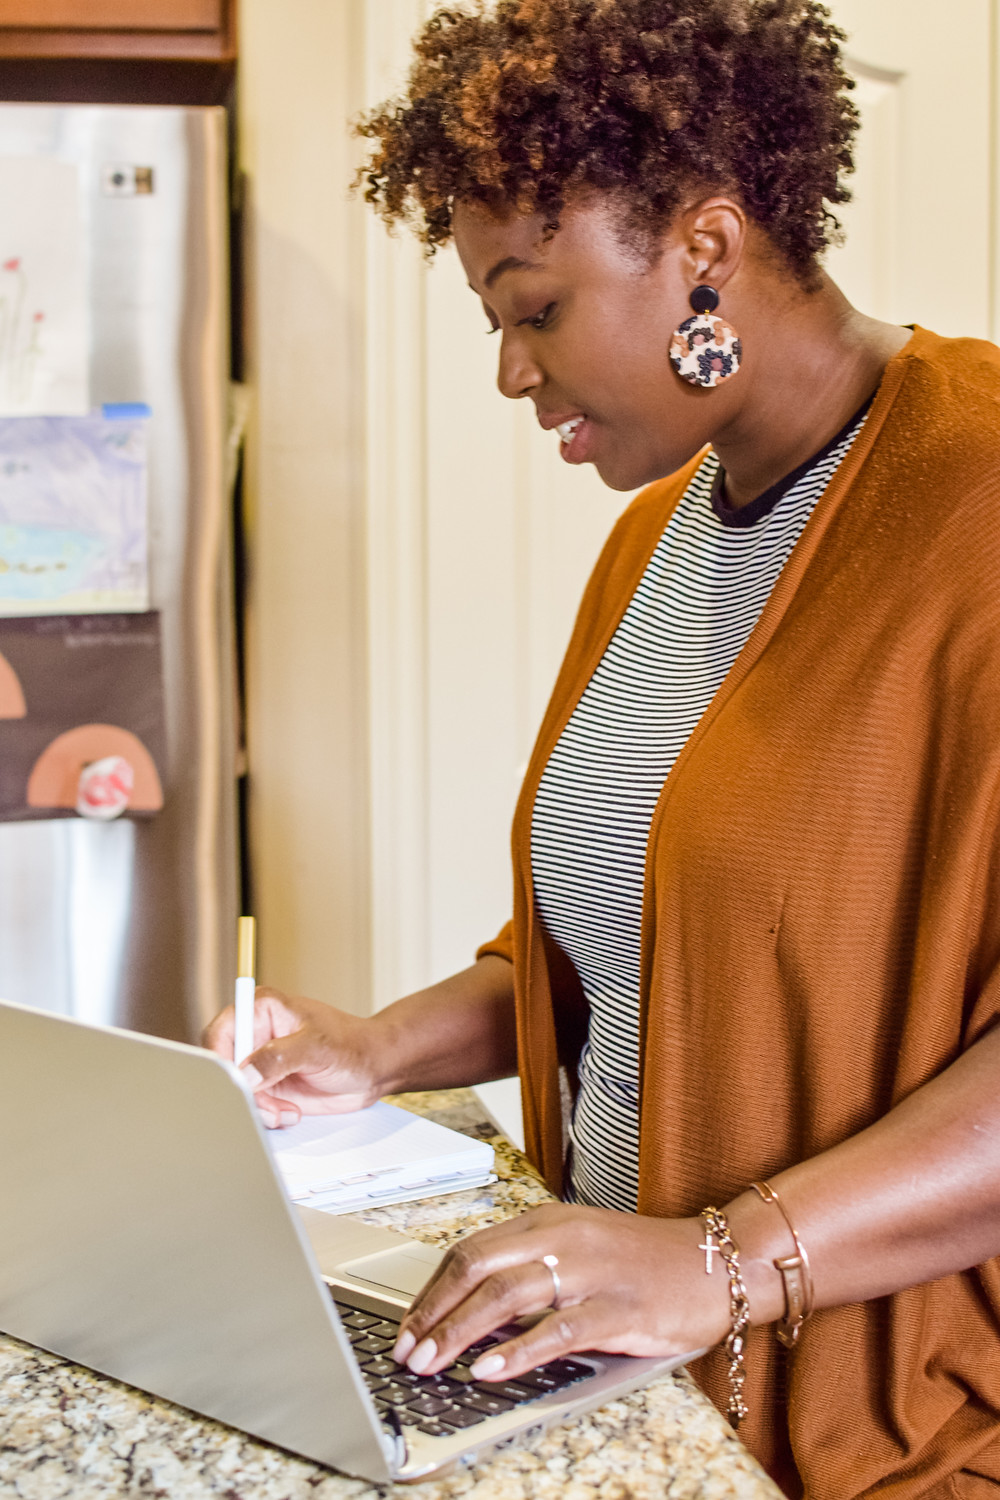 Shanell Tyus Black Mom on the computer working from home writing in planner while standing in the kitchen. Curly haired Black mom with tapered cut.